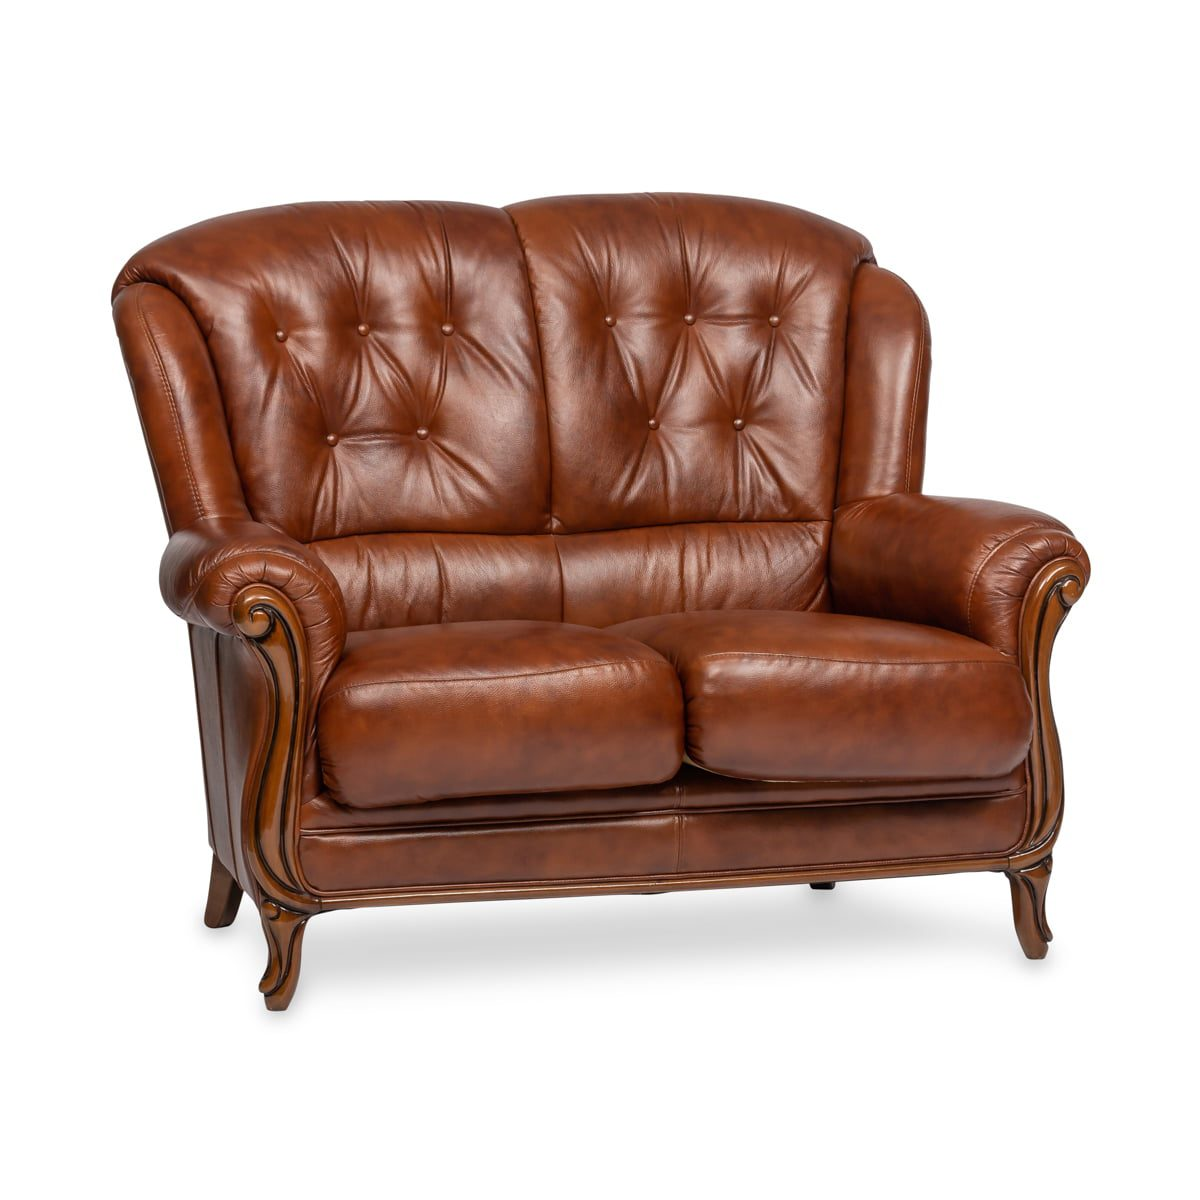 Terni Leather 2 Seater Sofa